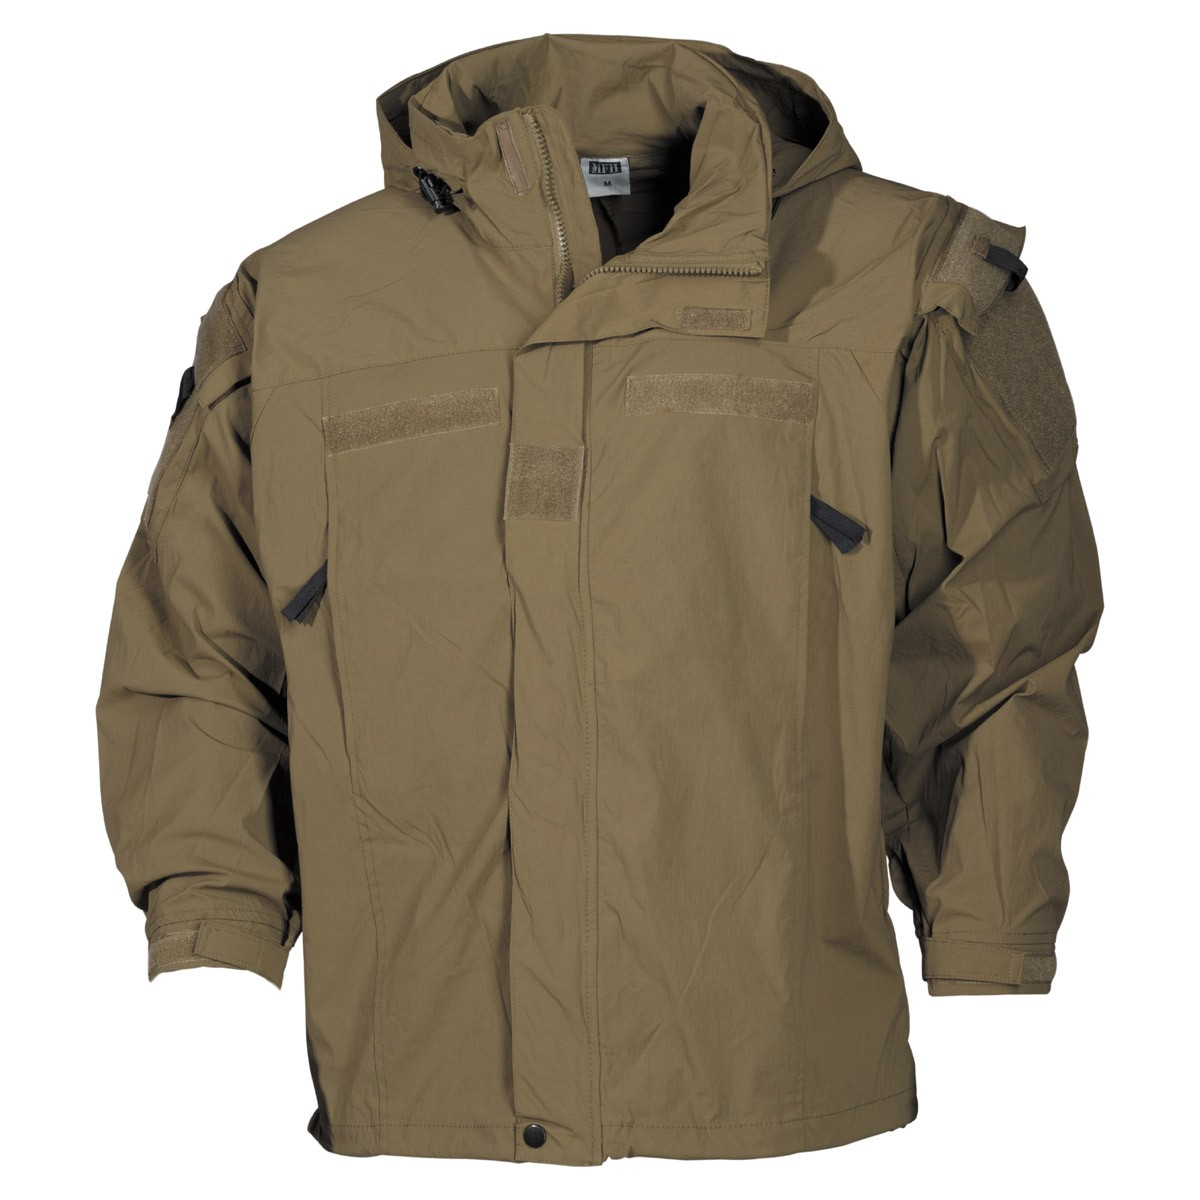 Tactical Military Soft Shell Waterproof Jacket GEN 3 - Coyote